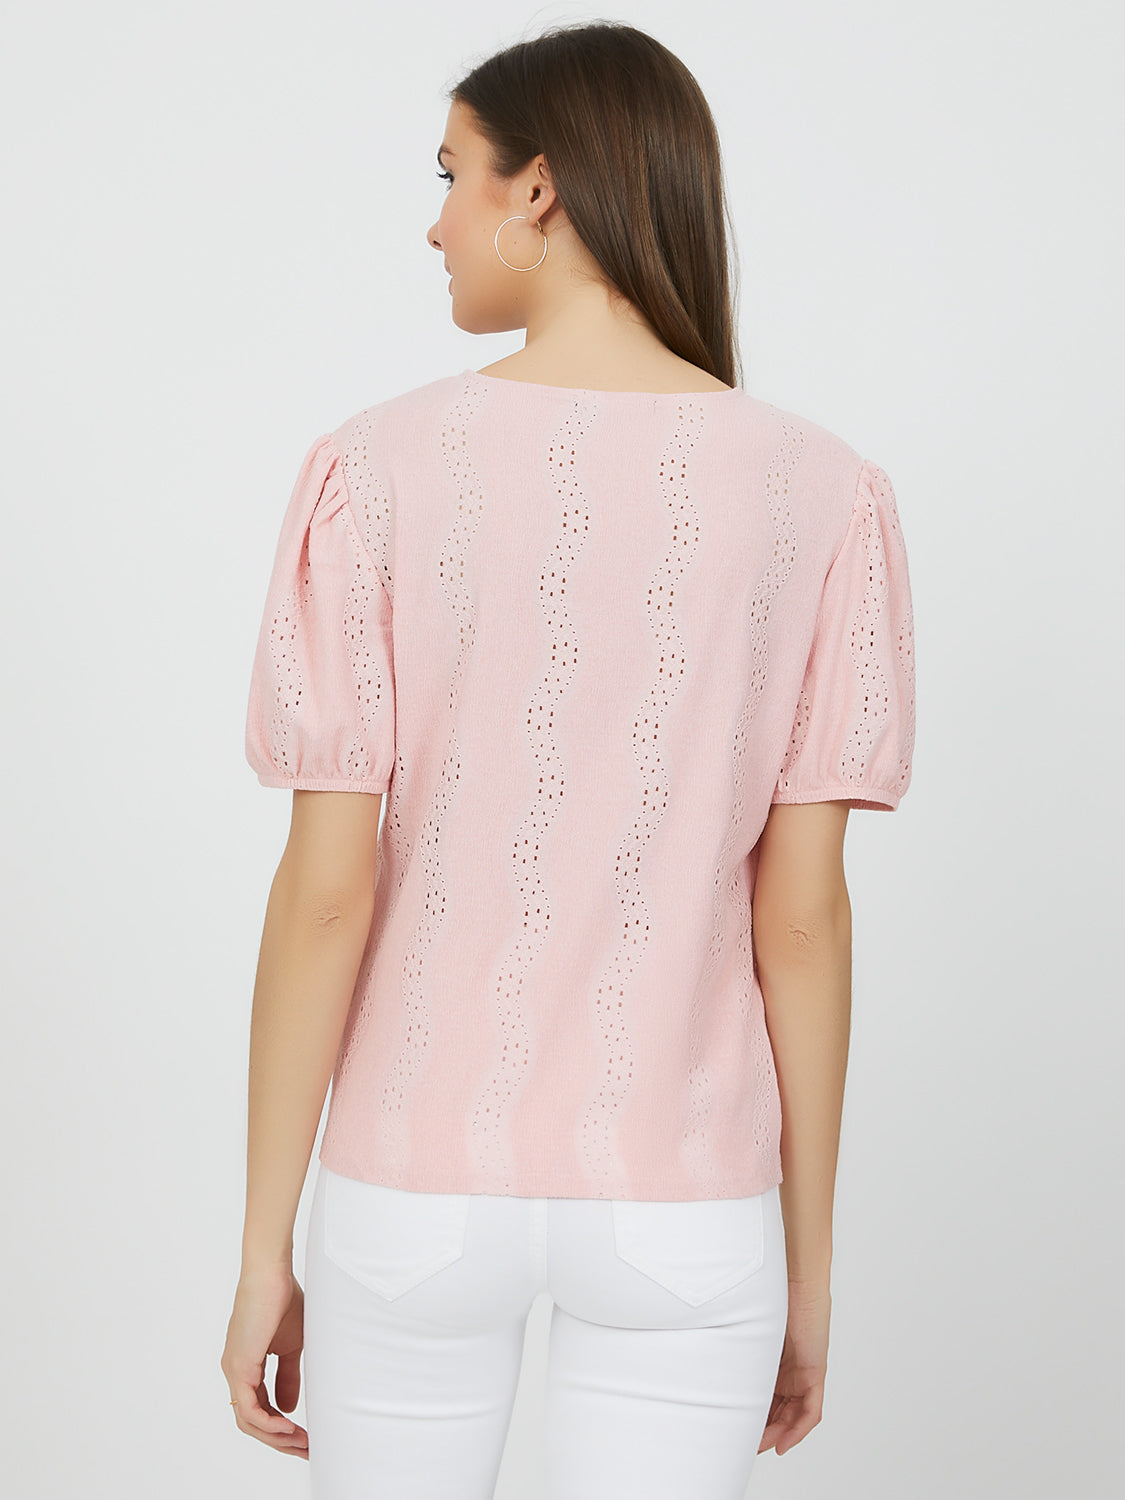 Short Puff Sleeve Eyelet Top